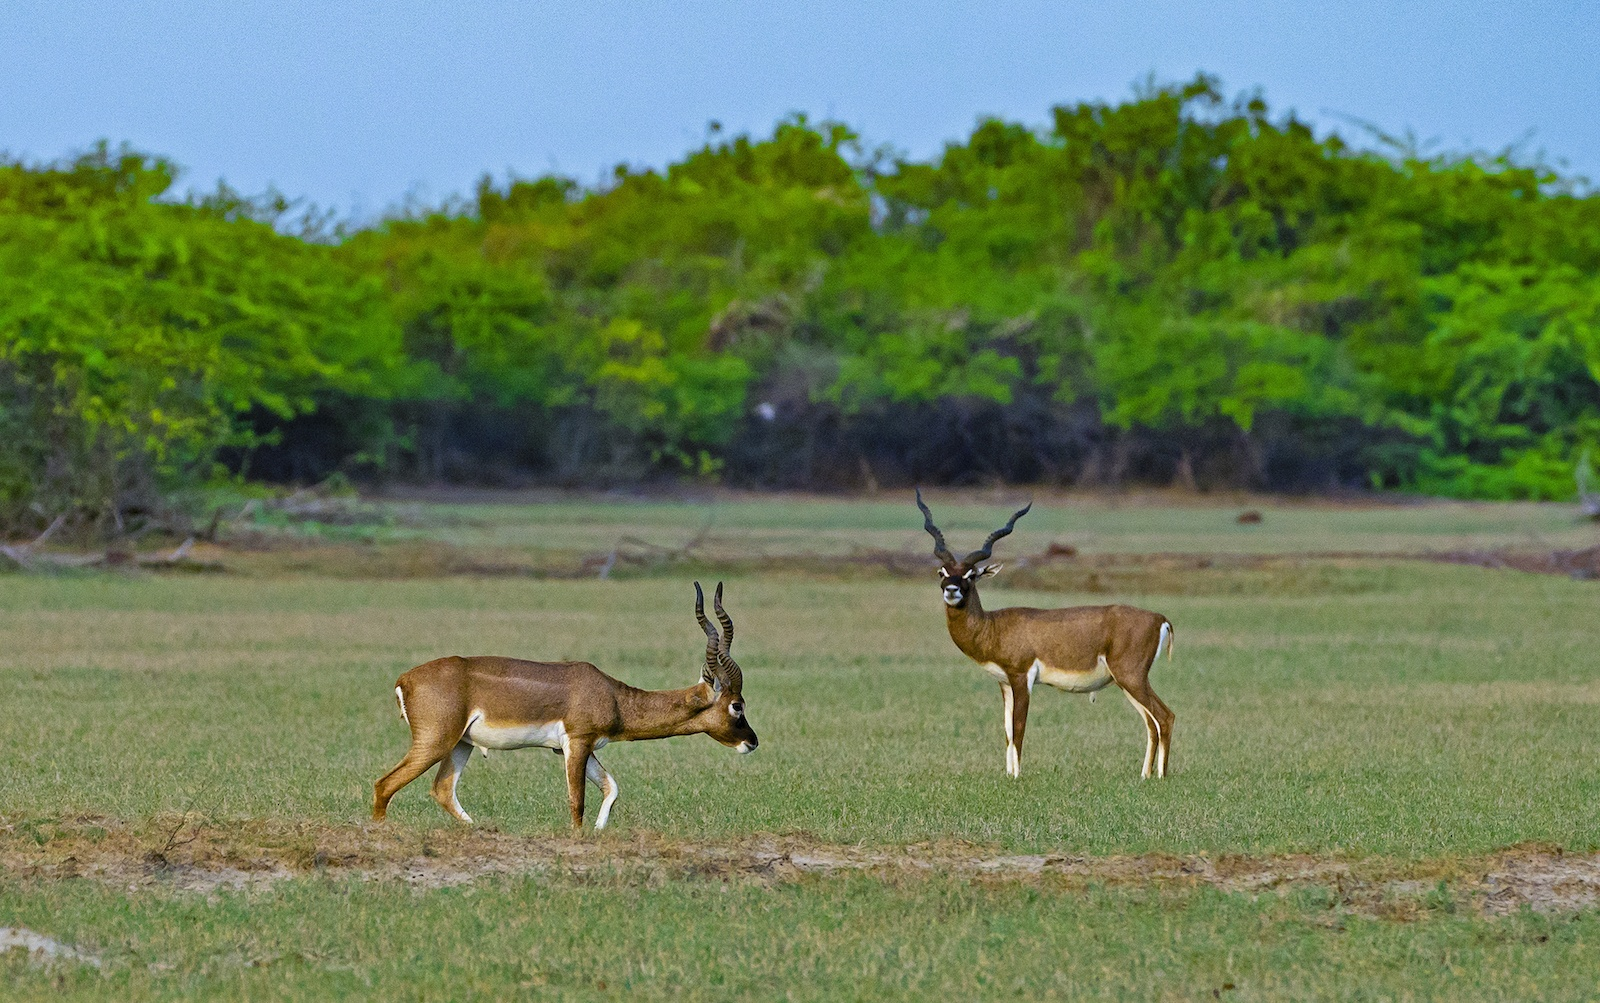 Blackbuck move in small herds, the size of which depends on availability of forage and habitat. Cover: Blackbuck are fantastic runners and can clock up to 80 kmph. These lean and sinewy 2-3 year-old males exude grace and beauty.